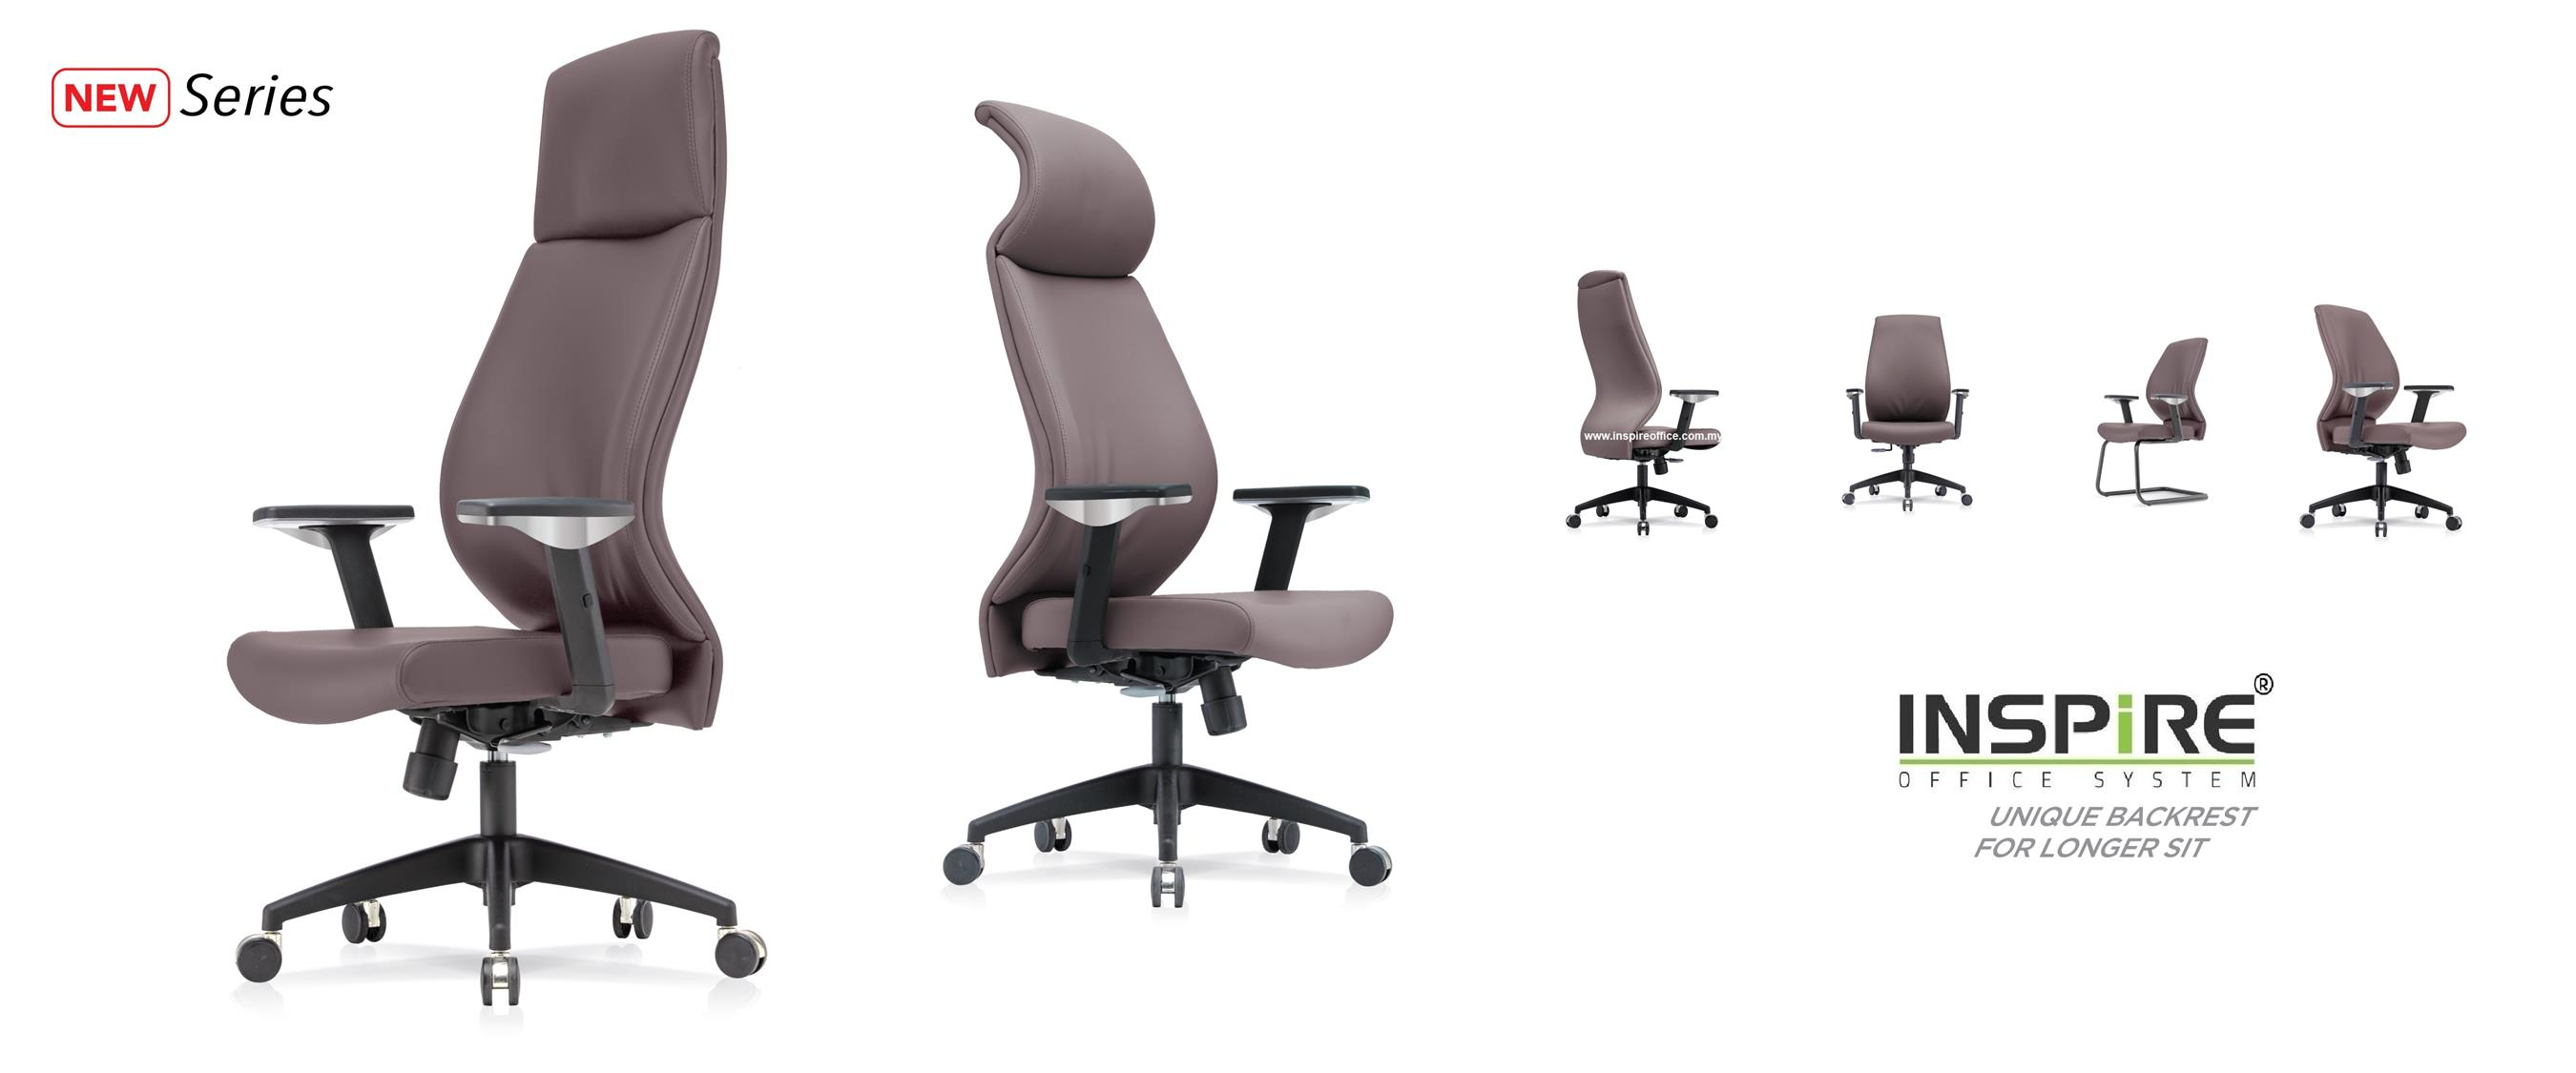 CELOSIA INS-3CHB High Back Curve PU/Fabric Office Chair